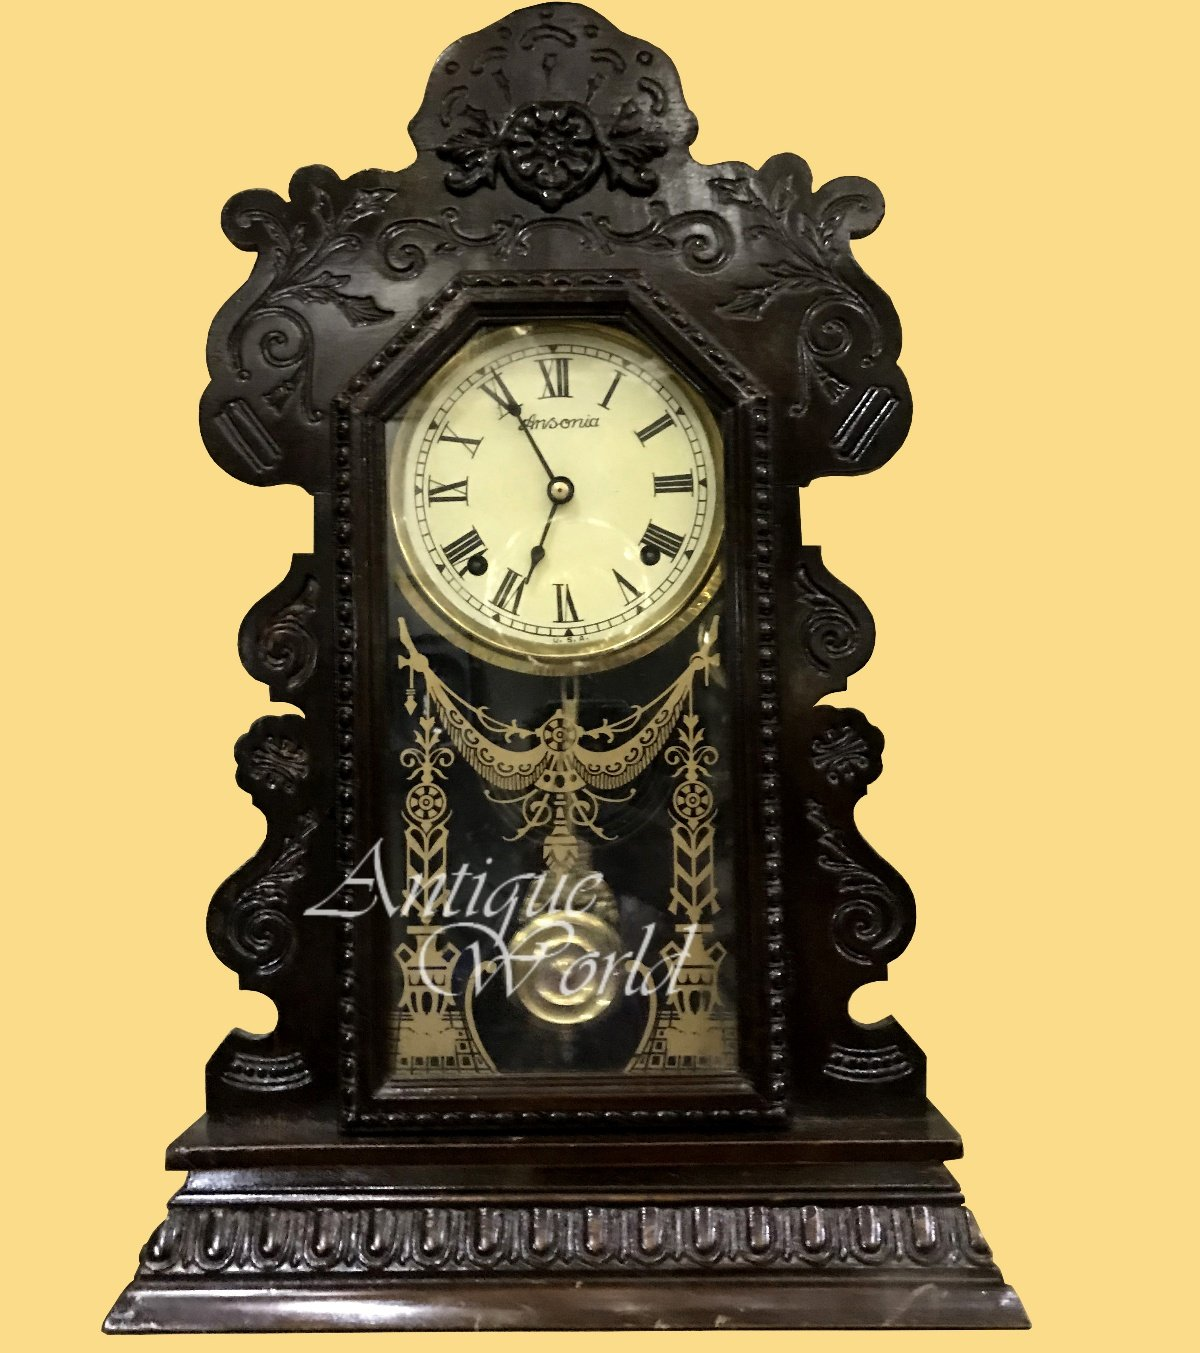 Antiques World Ansonia Gingerbread Elegant Wind Up Vintage England Watch Old Wooden Art Clocks Collectible Beautifully Designed Home And Wall Décor Antique Pendulum Wall Clock AWUAHB 0201